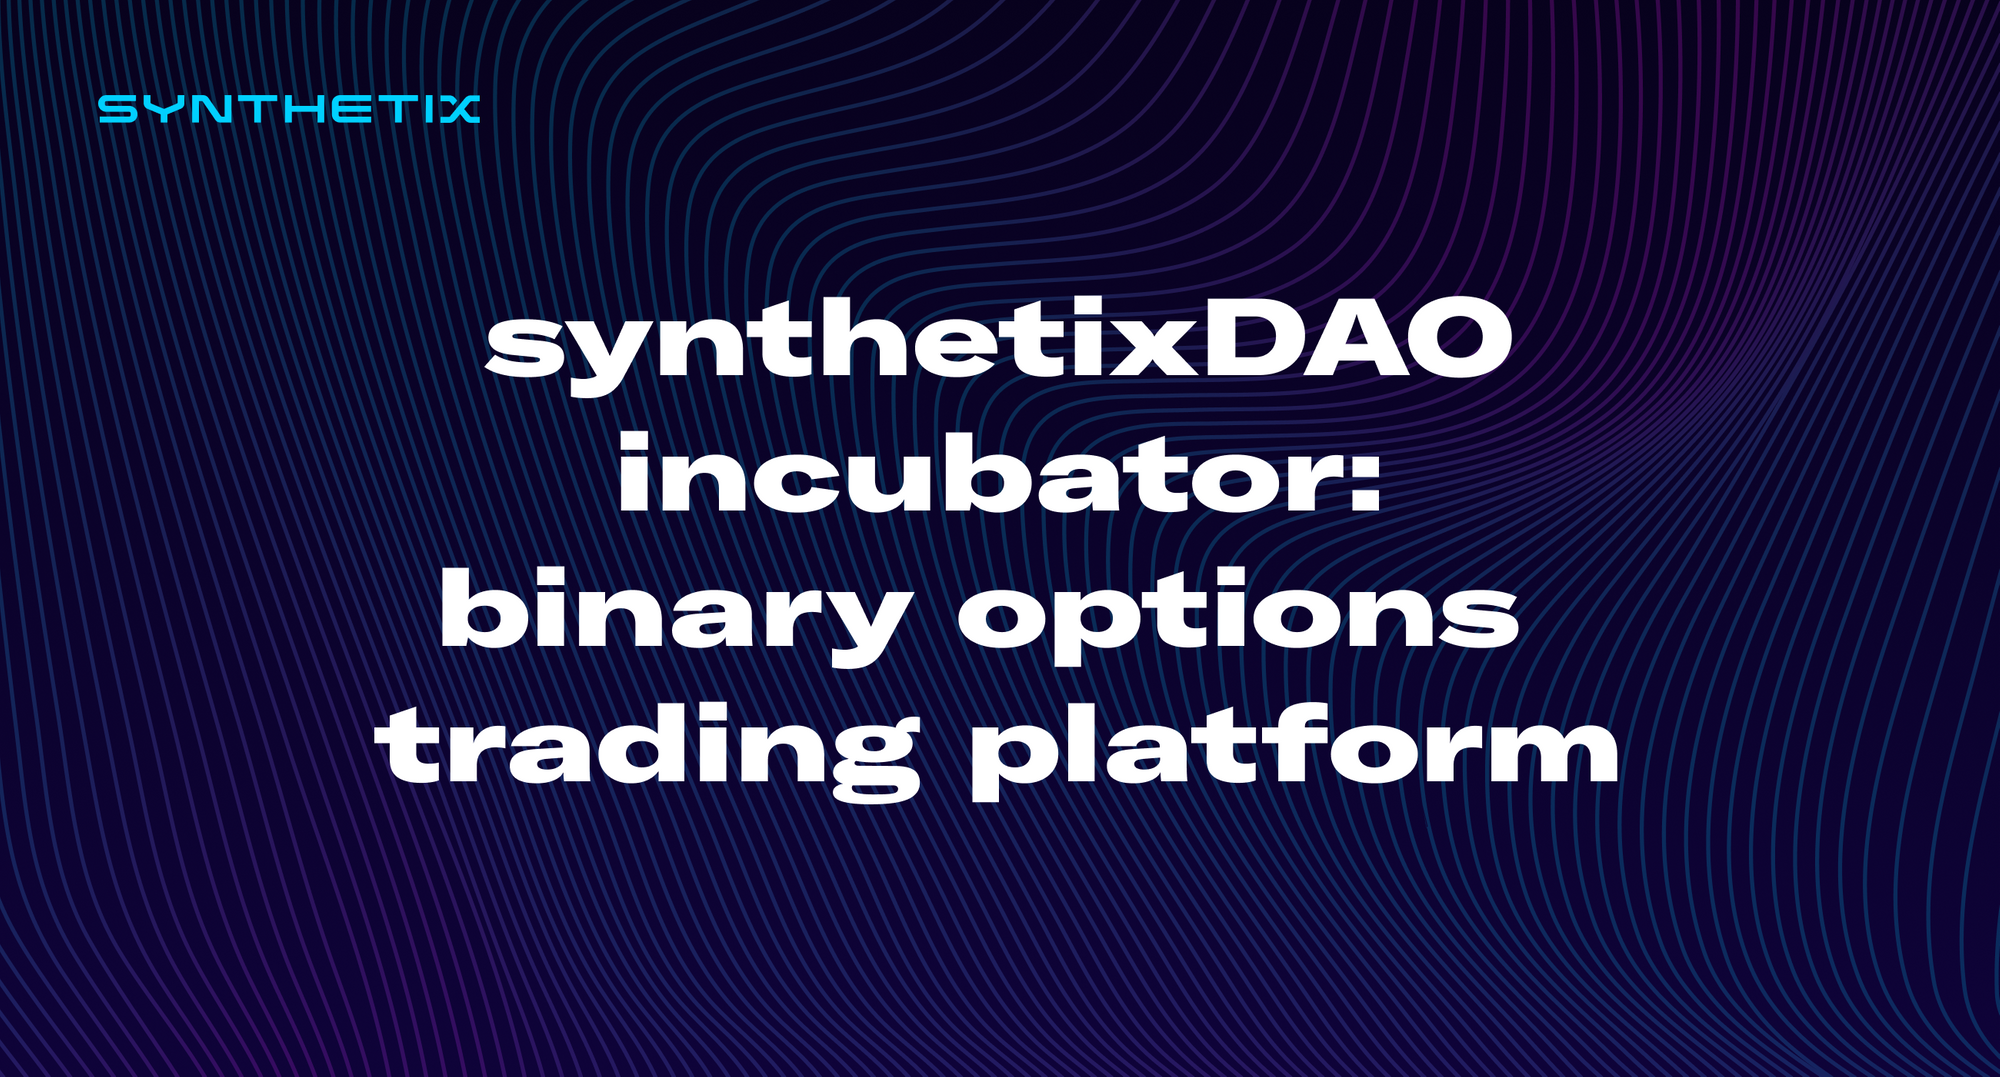 synthetixDAO incubator: binary options trading platform